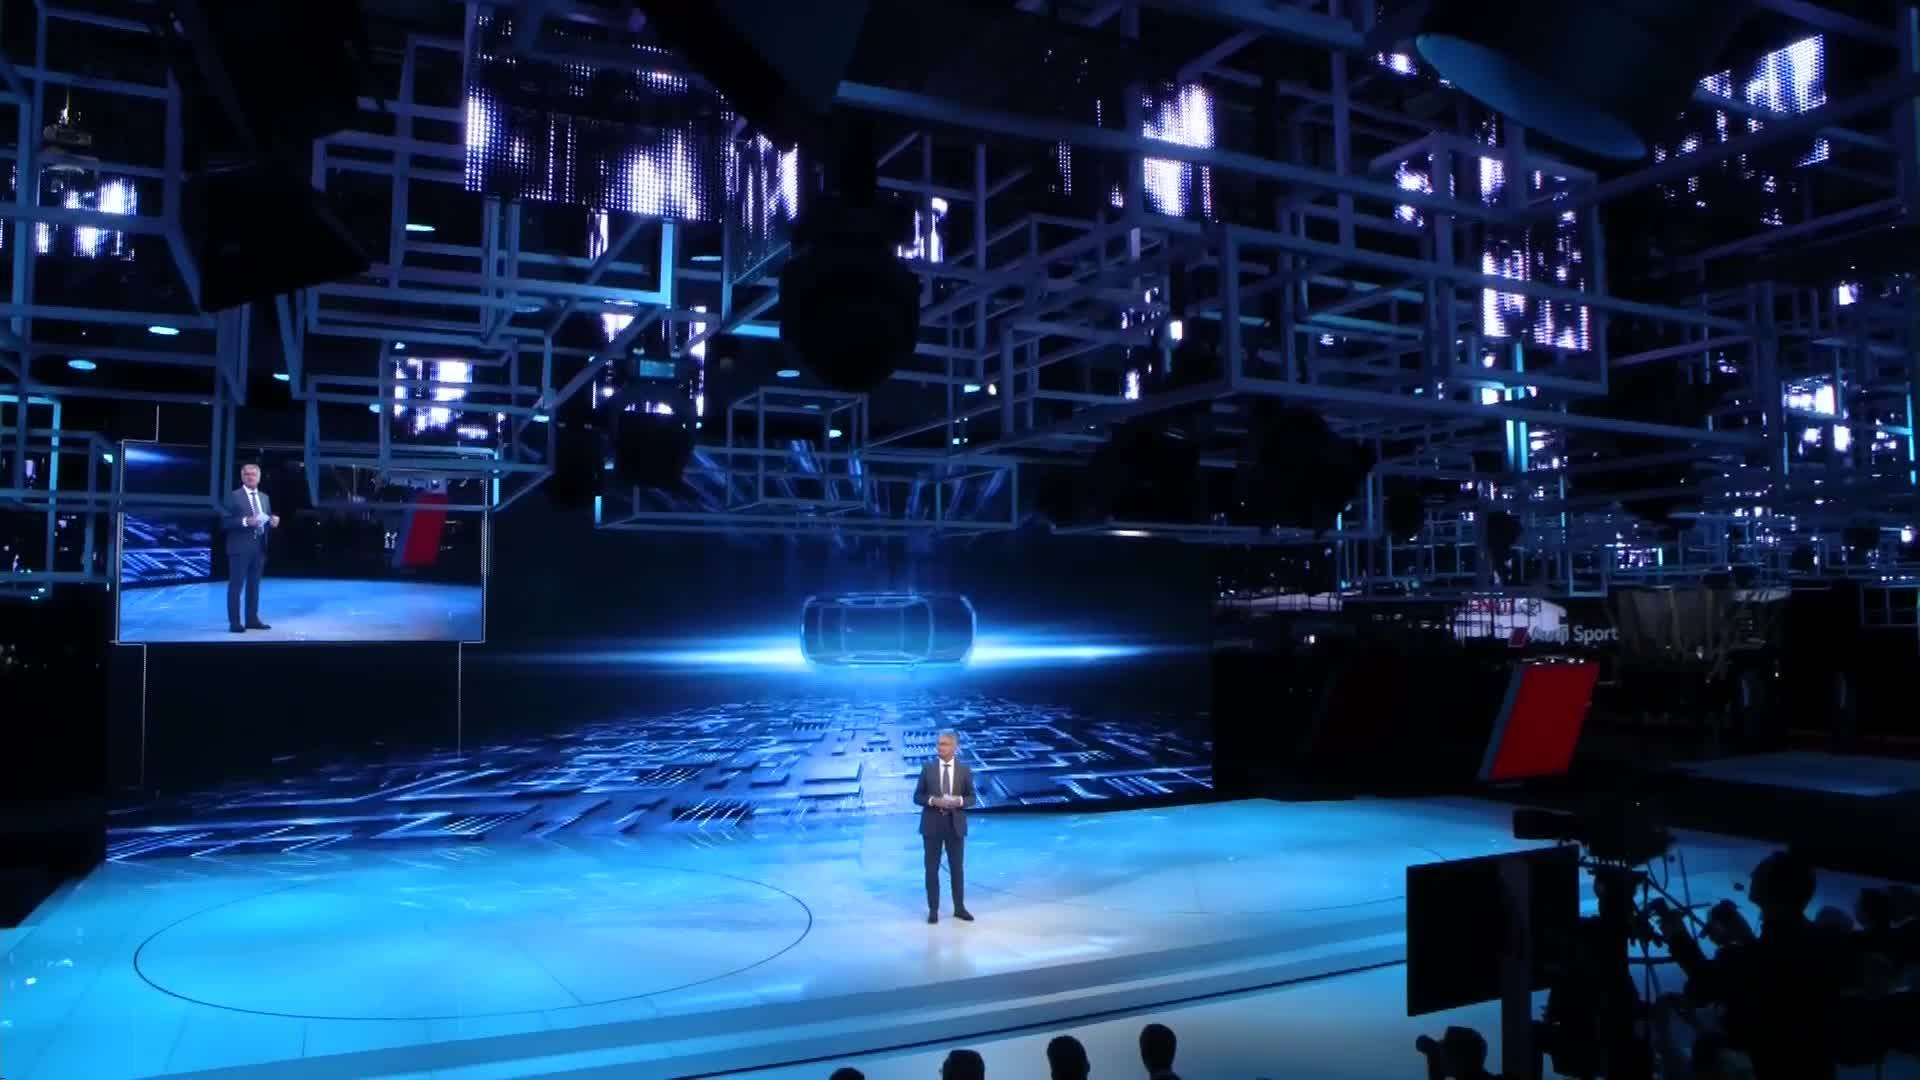 The Audi press conference from Paris